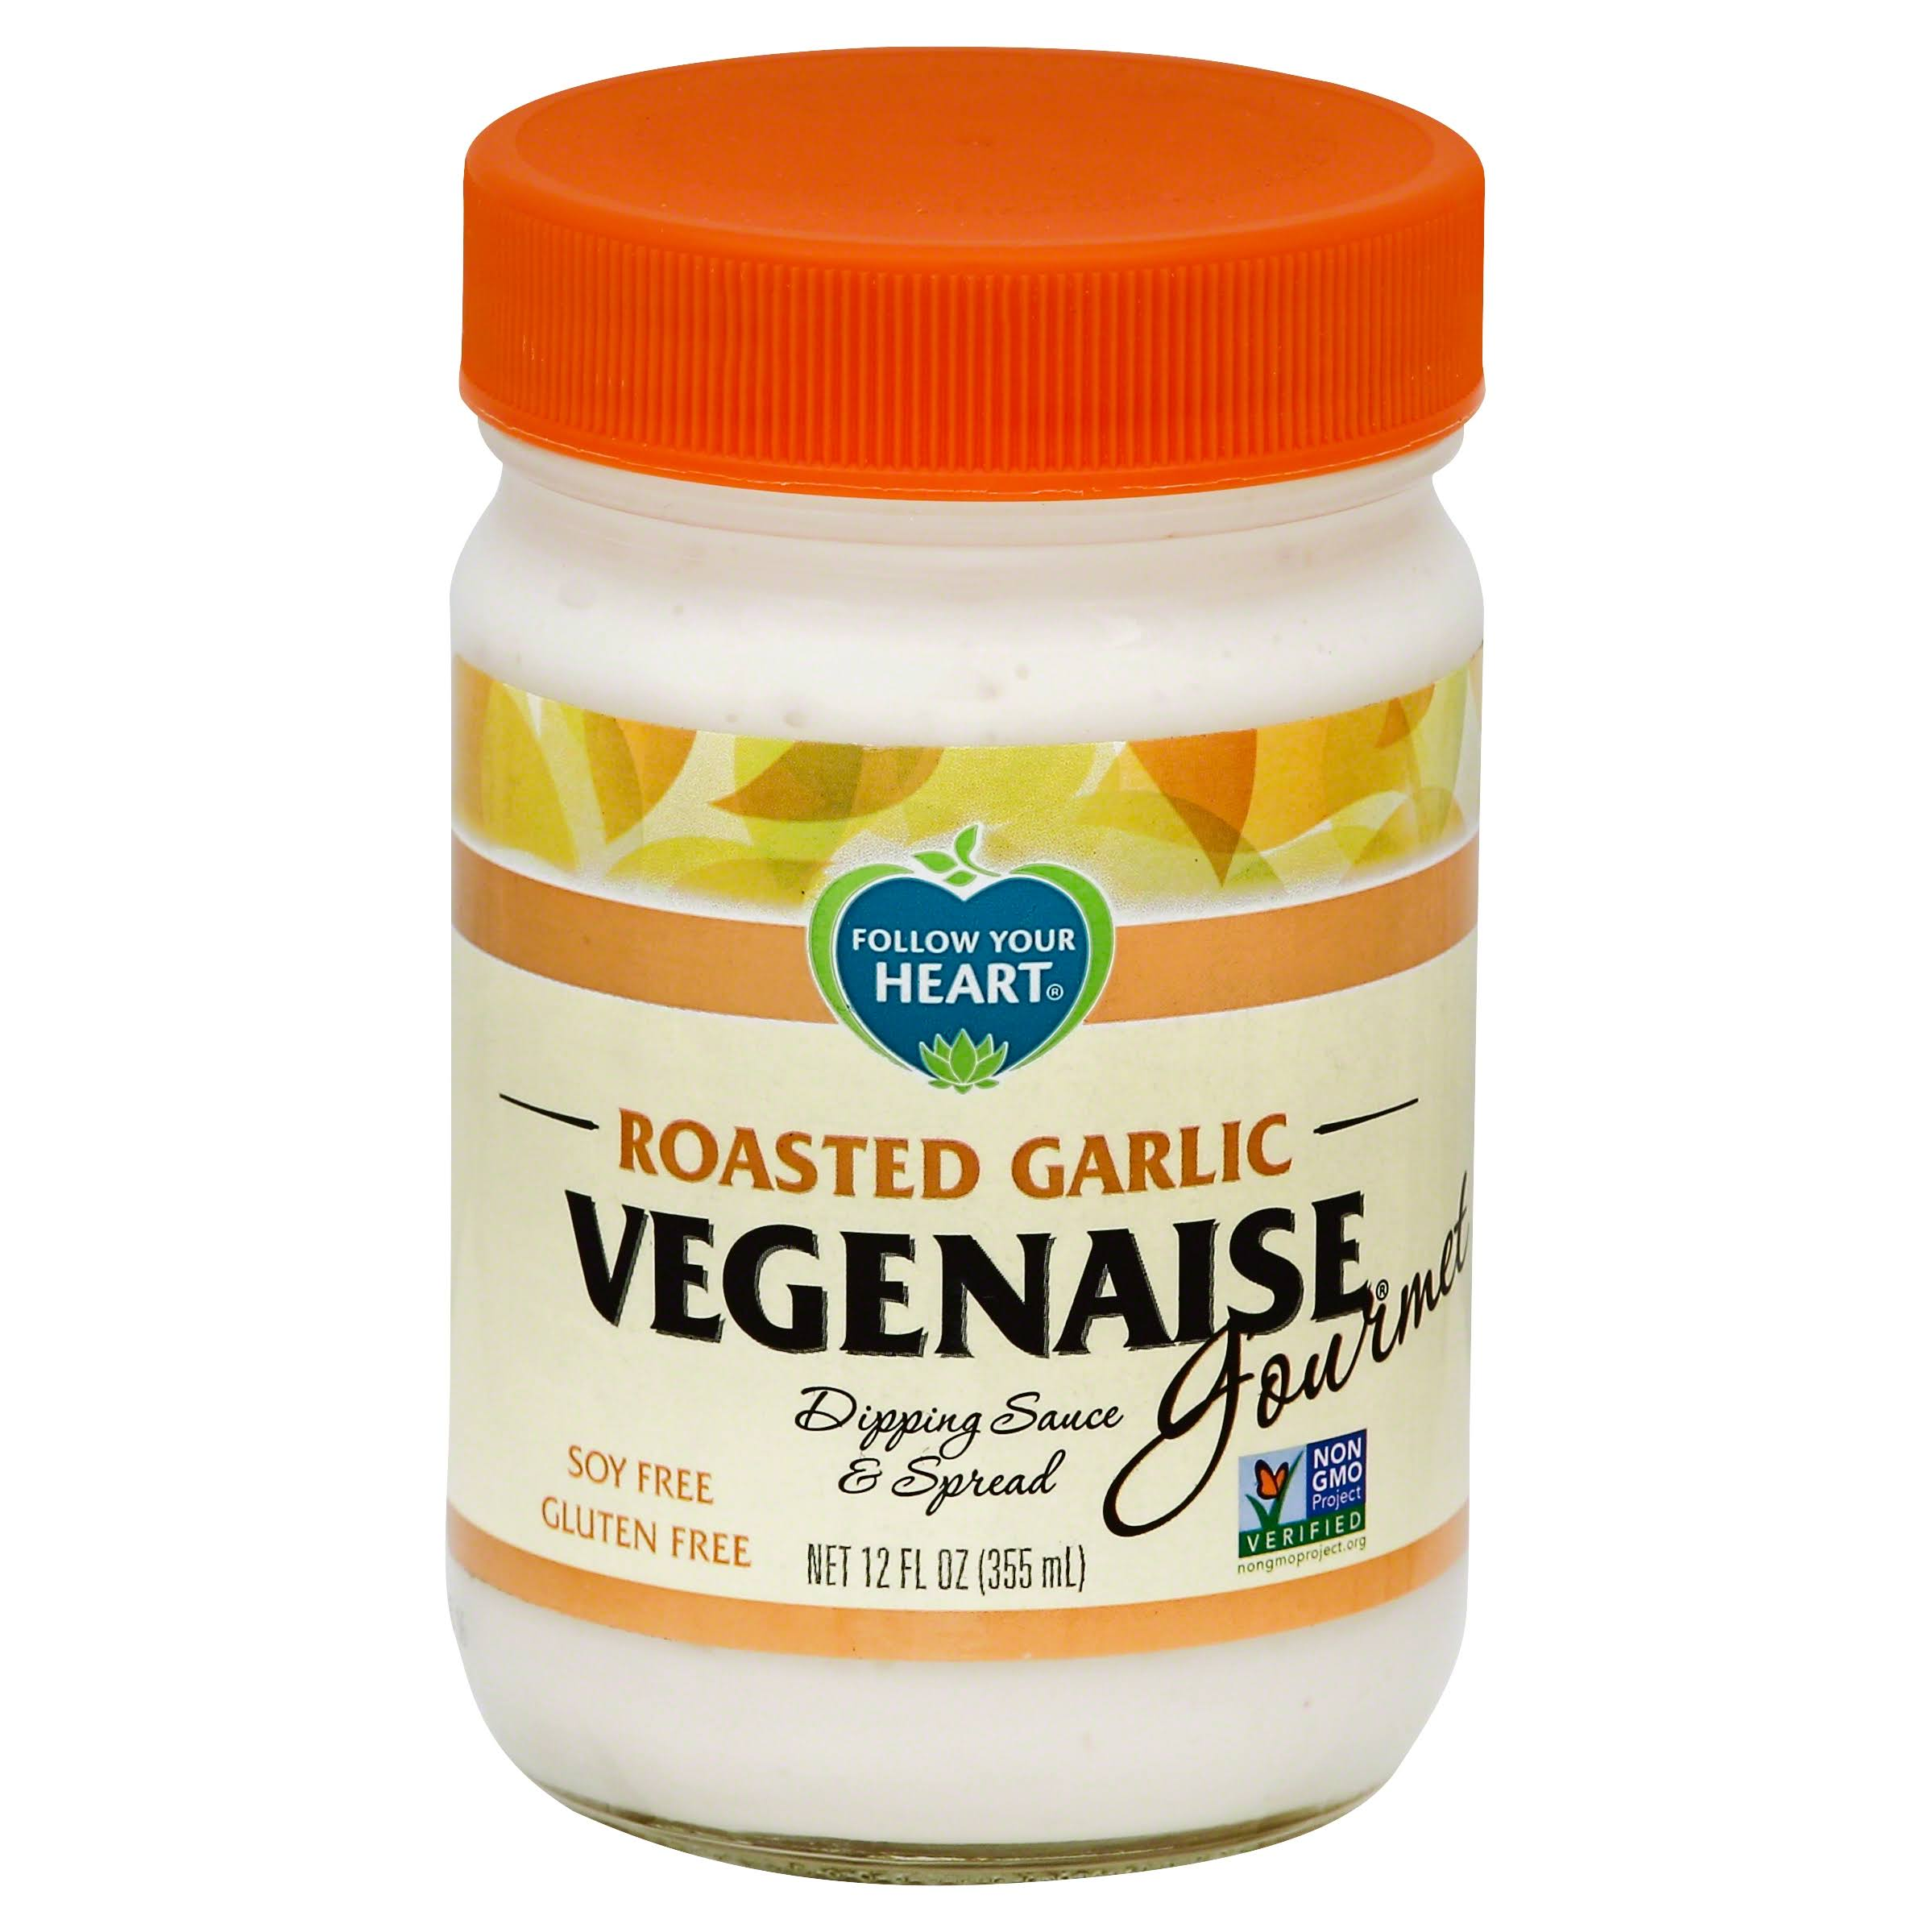 Follow Your Heart Roasted Garlic Vegenaise Dressing - 350ml